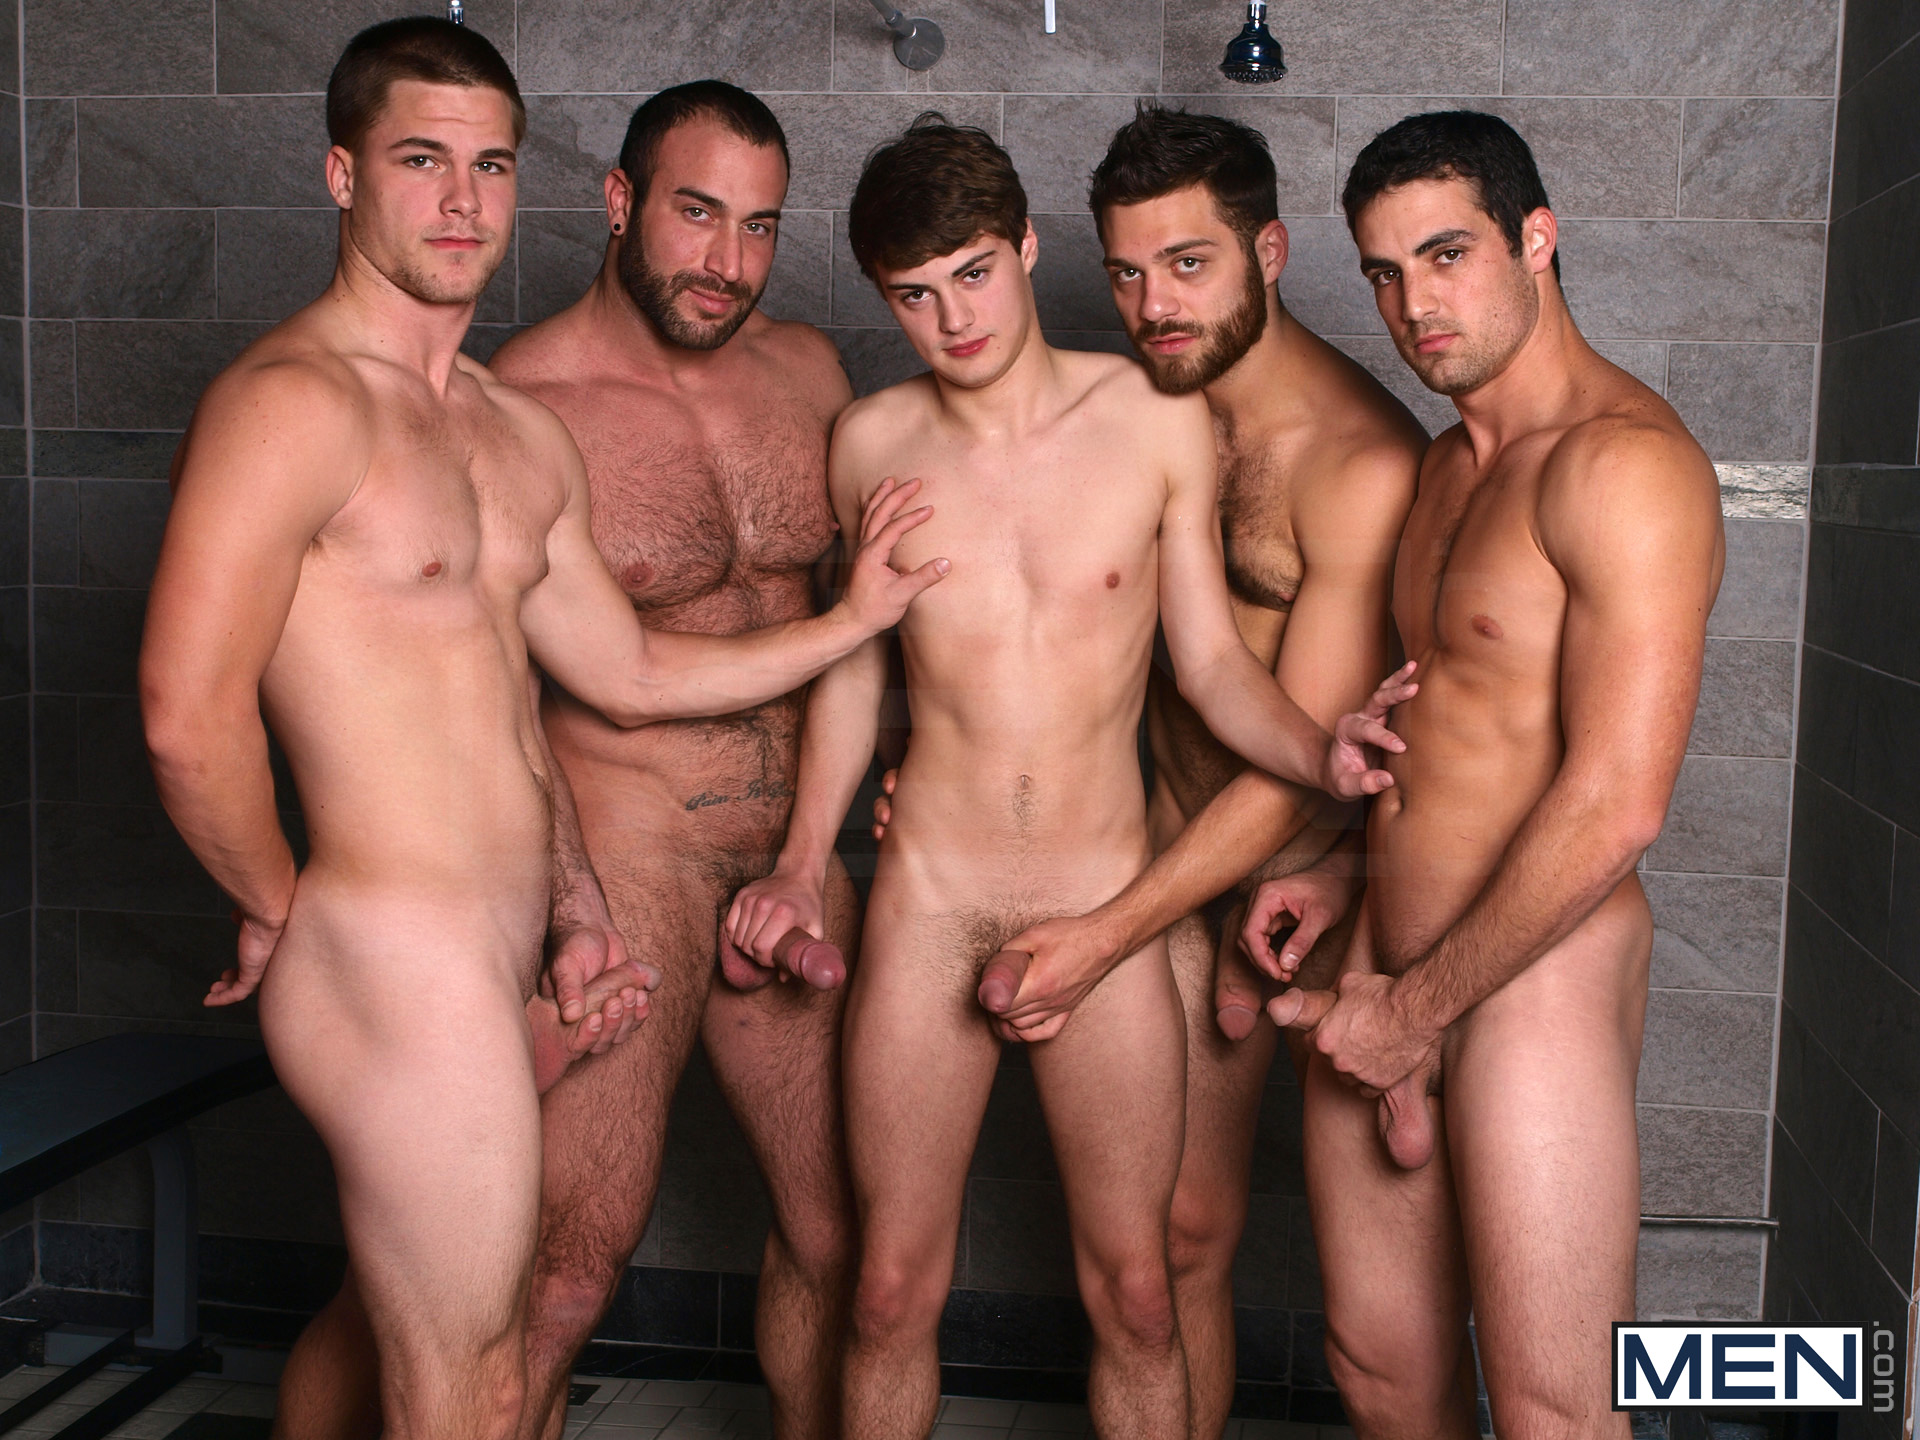 A gay twink gangbang by older men and soft 9